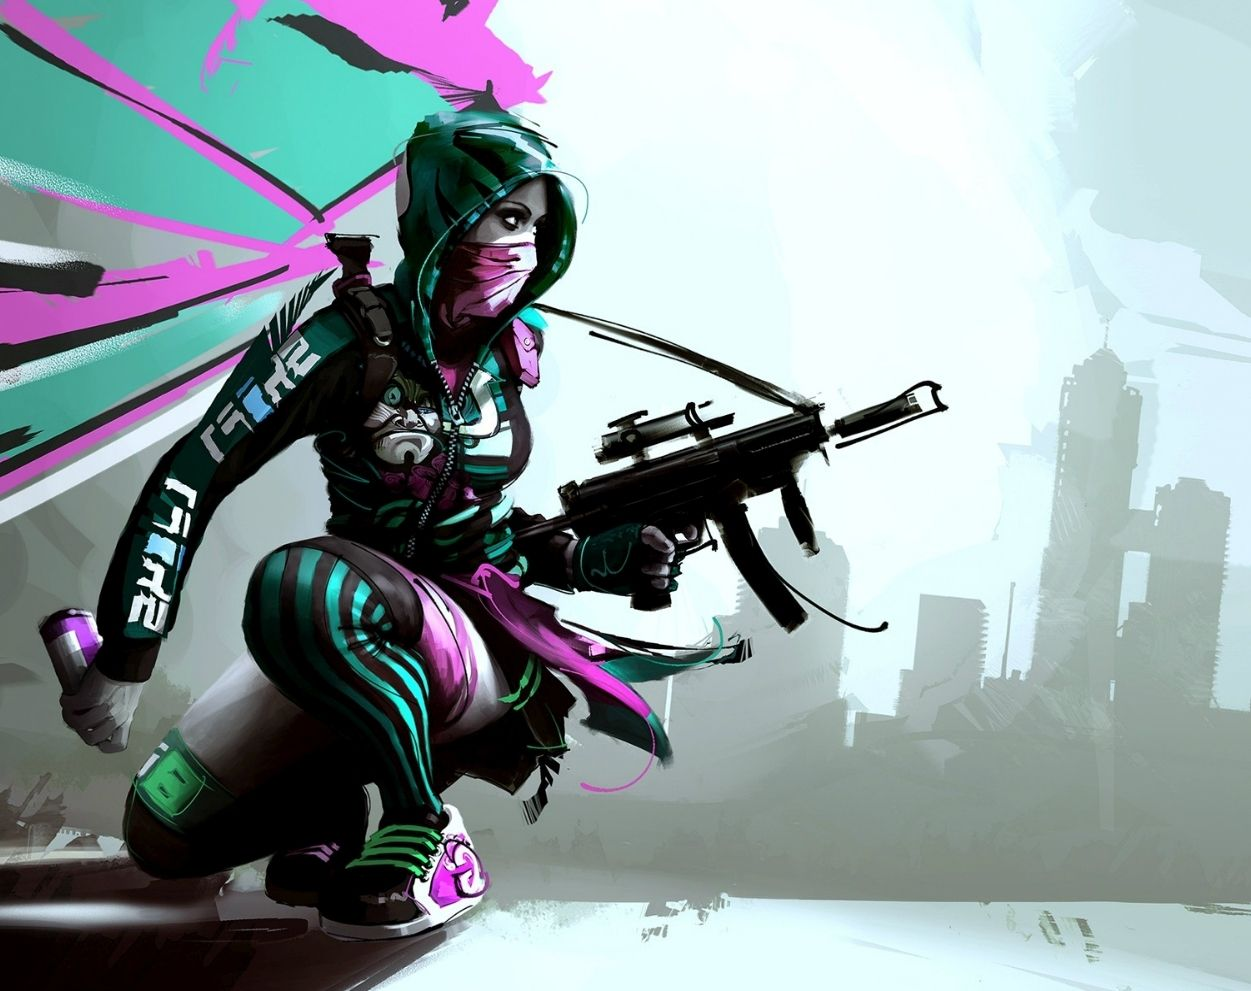 APB Reloaded to be published on PlayStation 4 in 2015